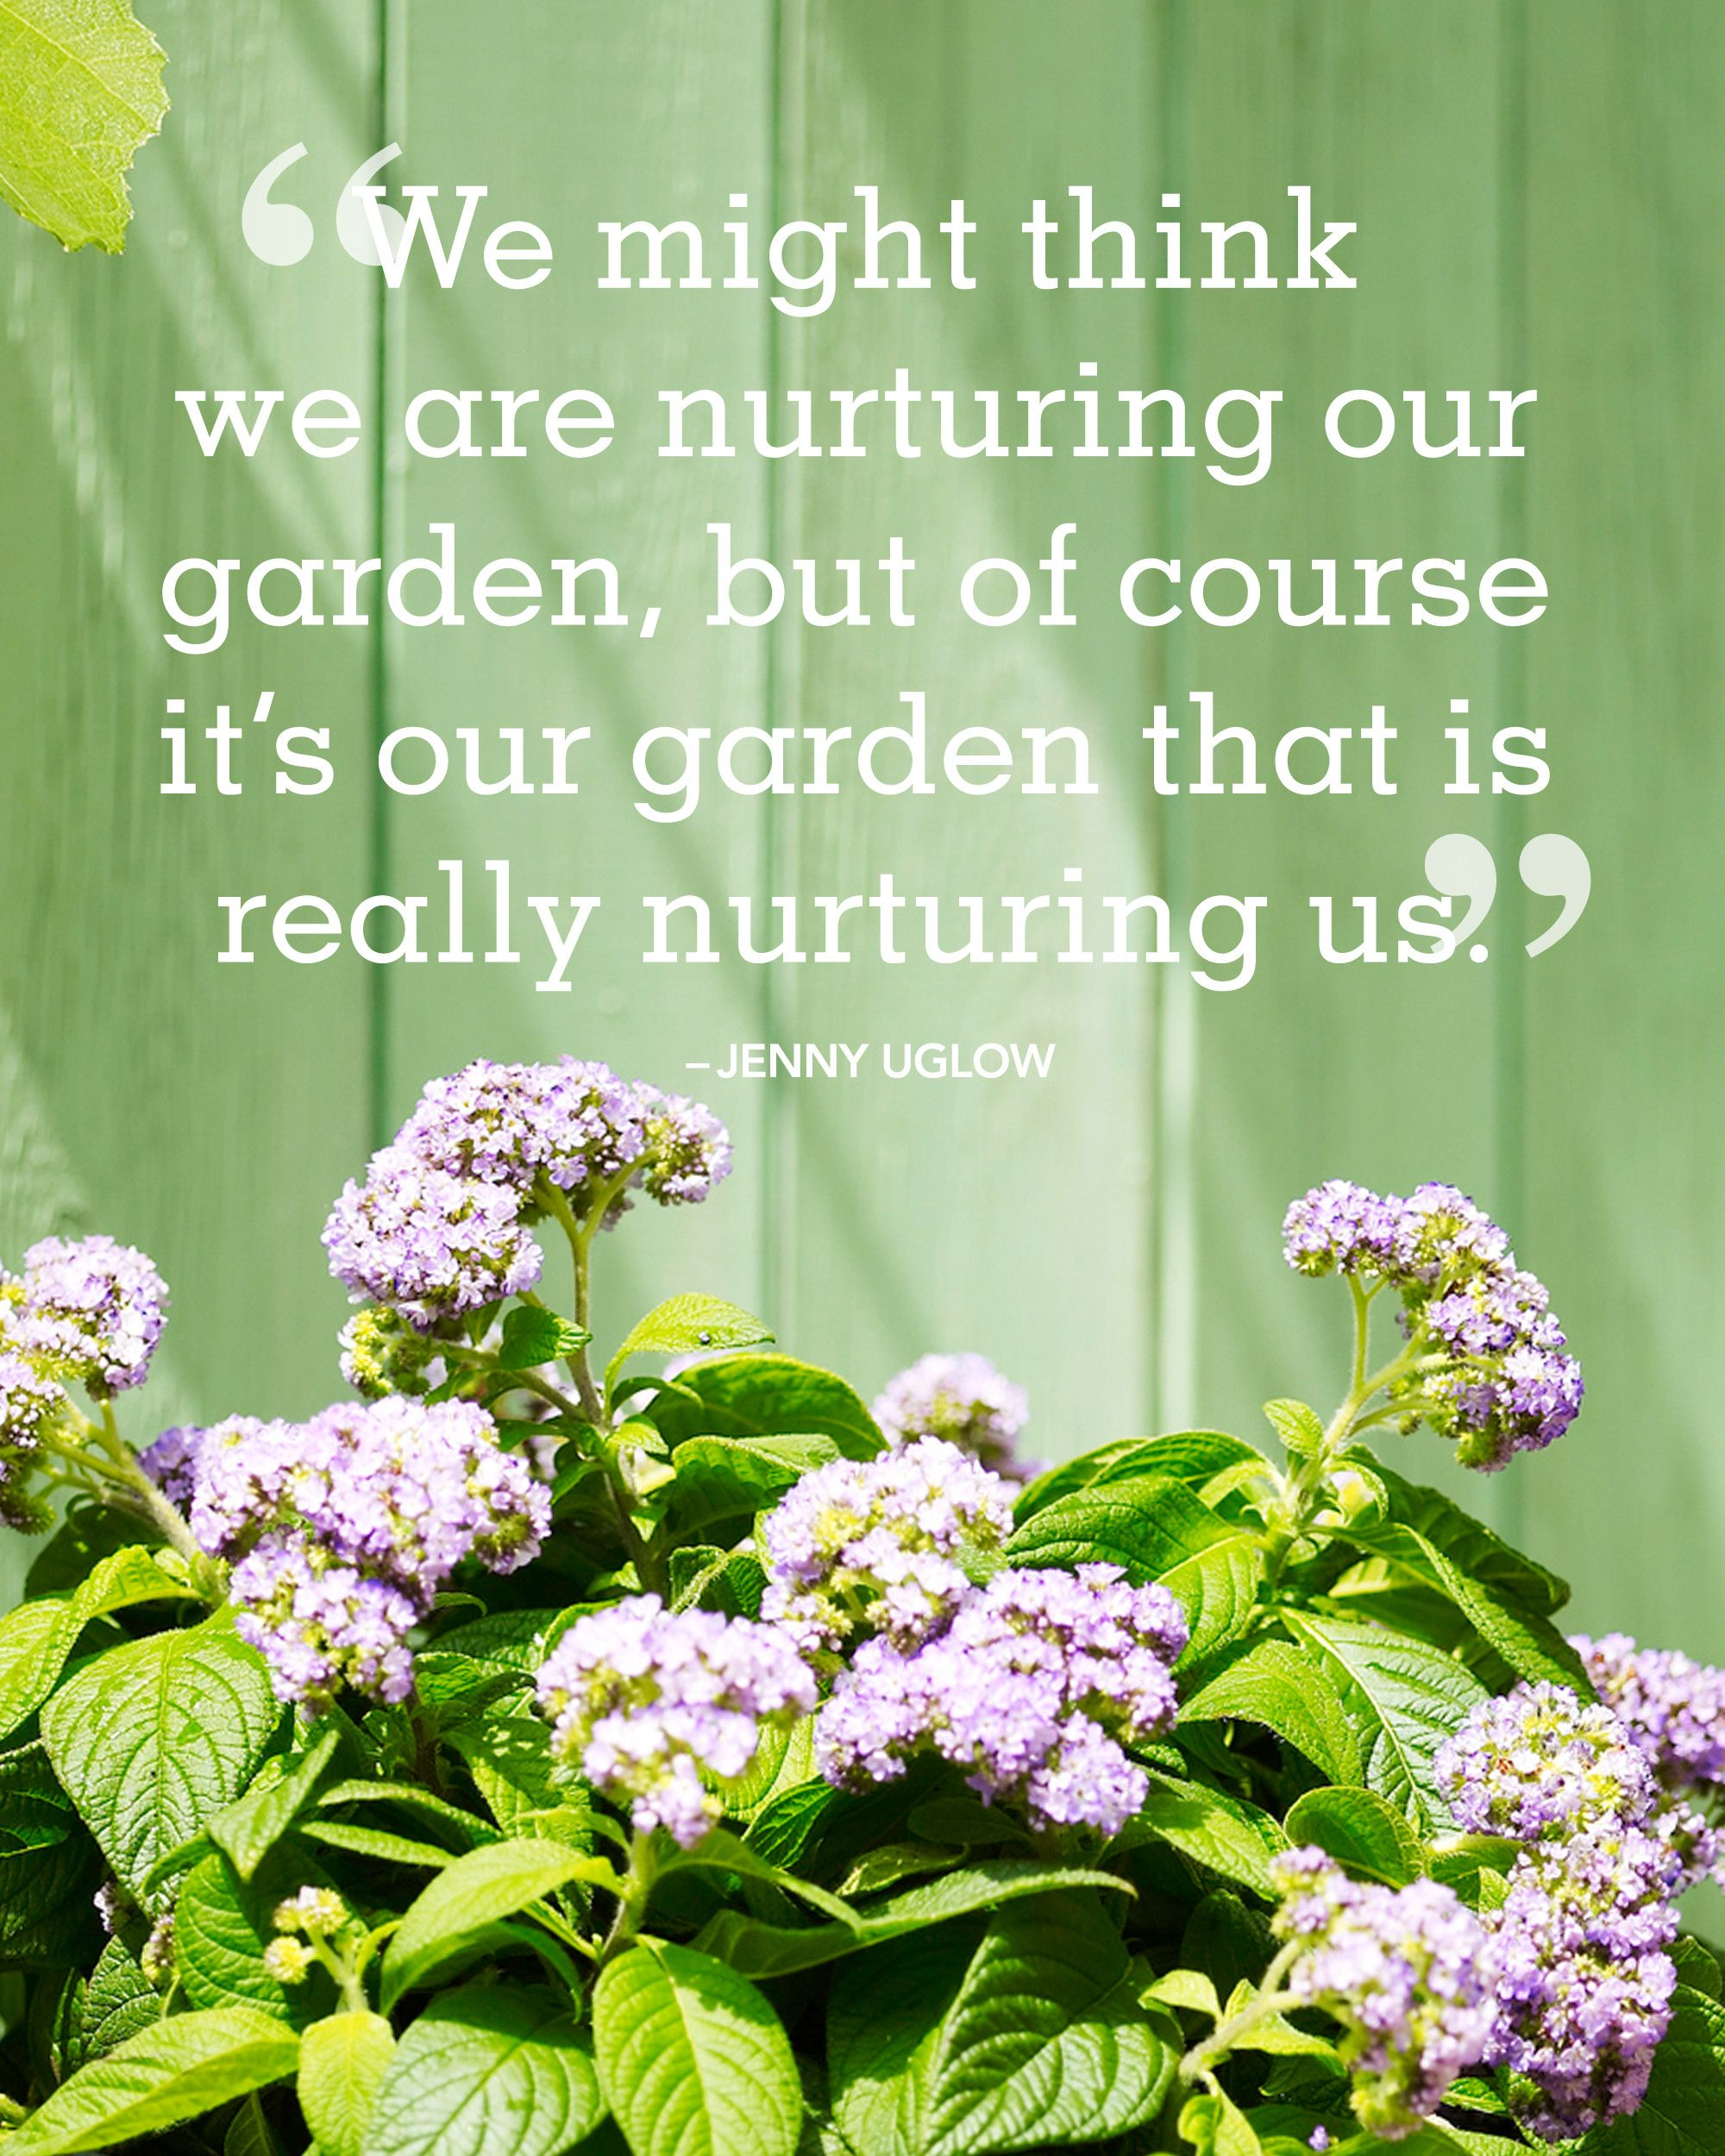 We might think we are nurturing our garden, but of course it's our garden that is really nurturing us. -Jenny Uglow